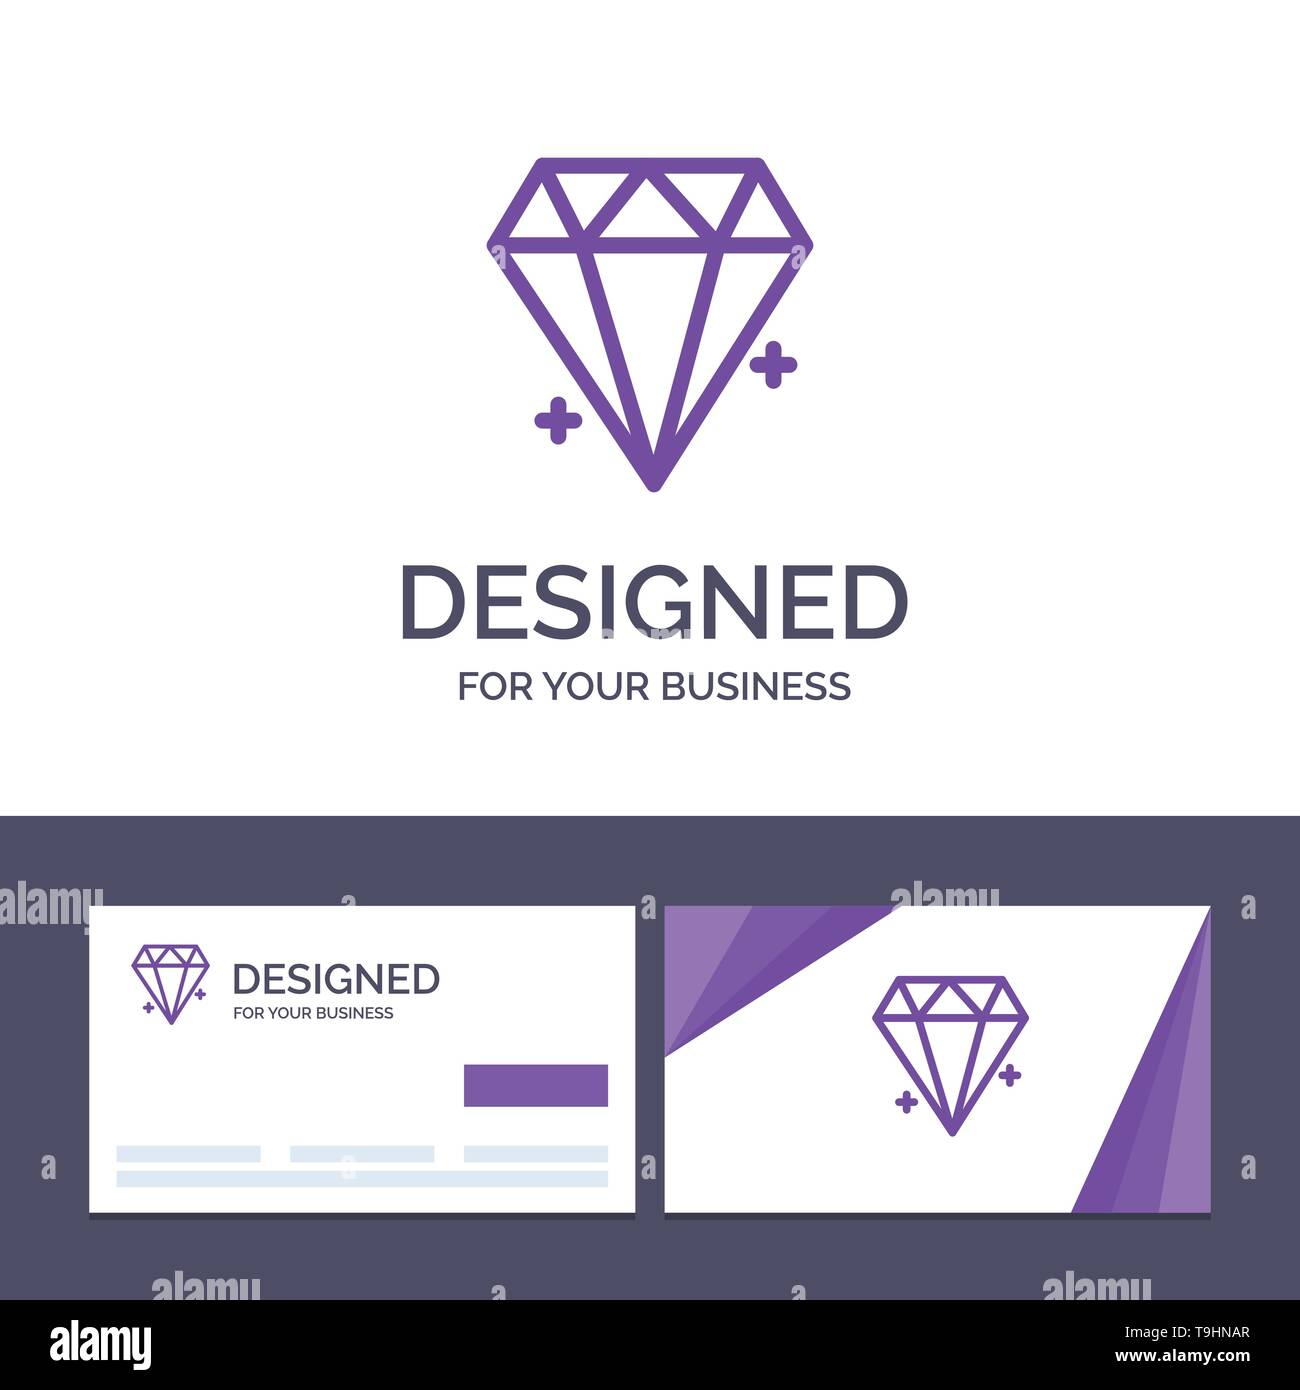 Creative Business Card and Logo template Diamond, Ecommerce, Jewelry, Jewel Vector Illustration - Stock Image